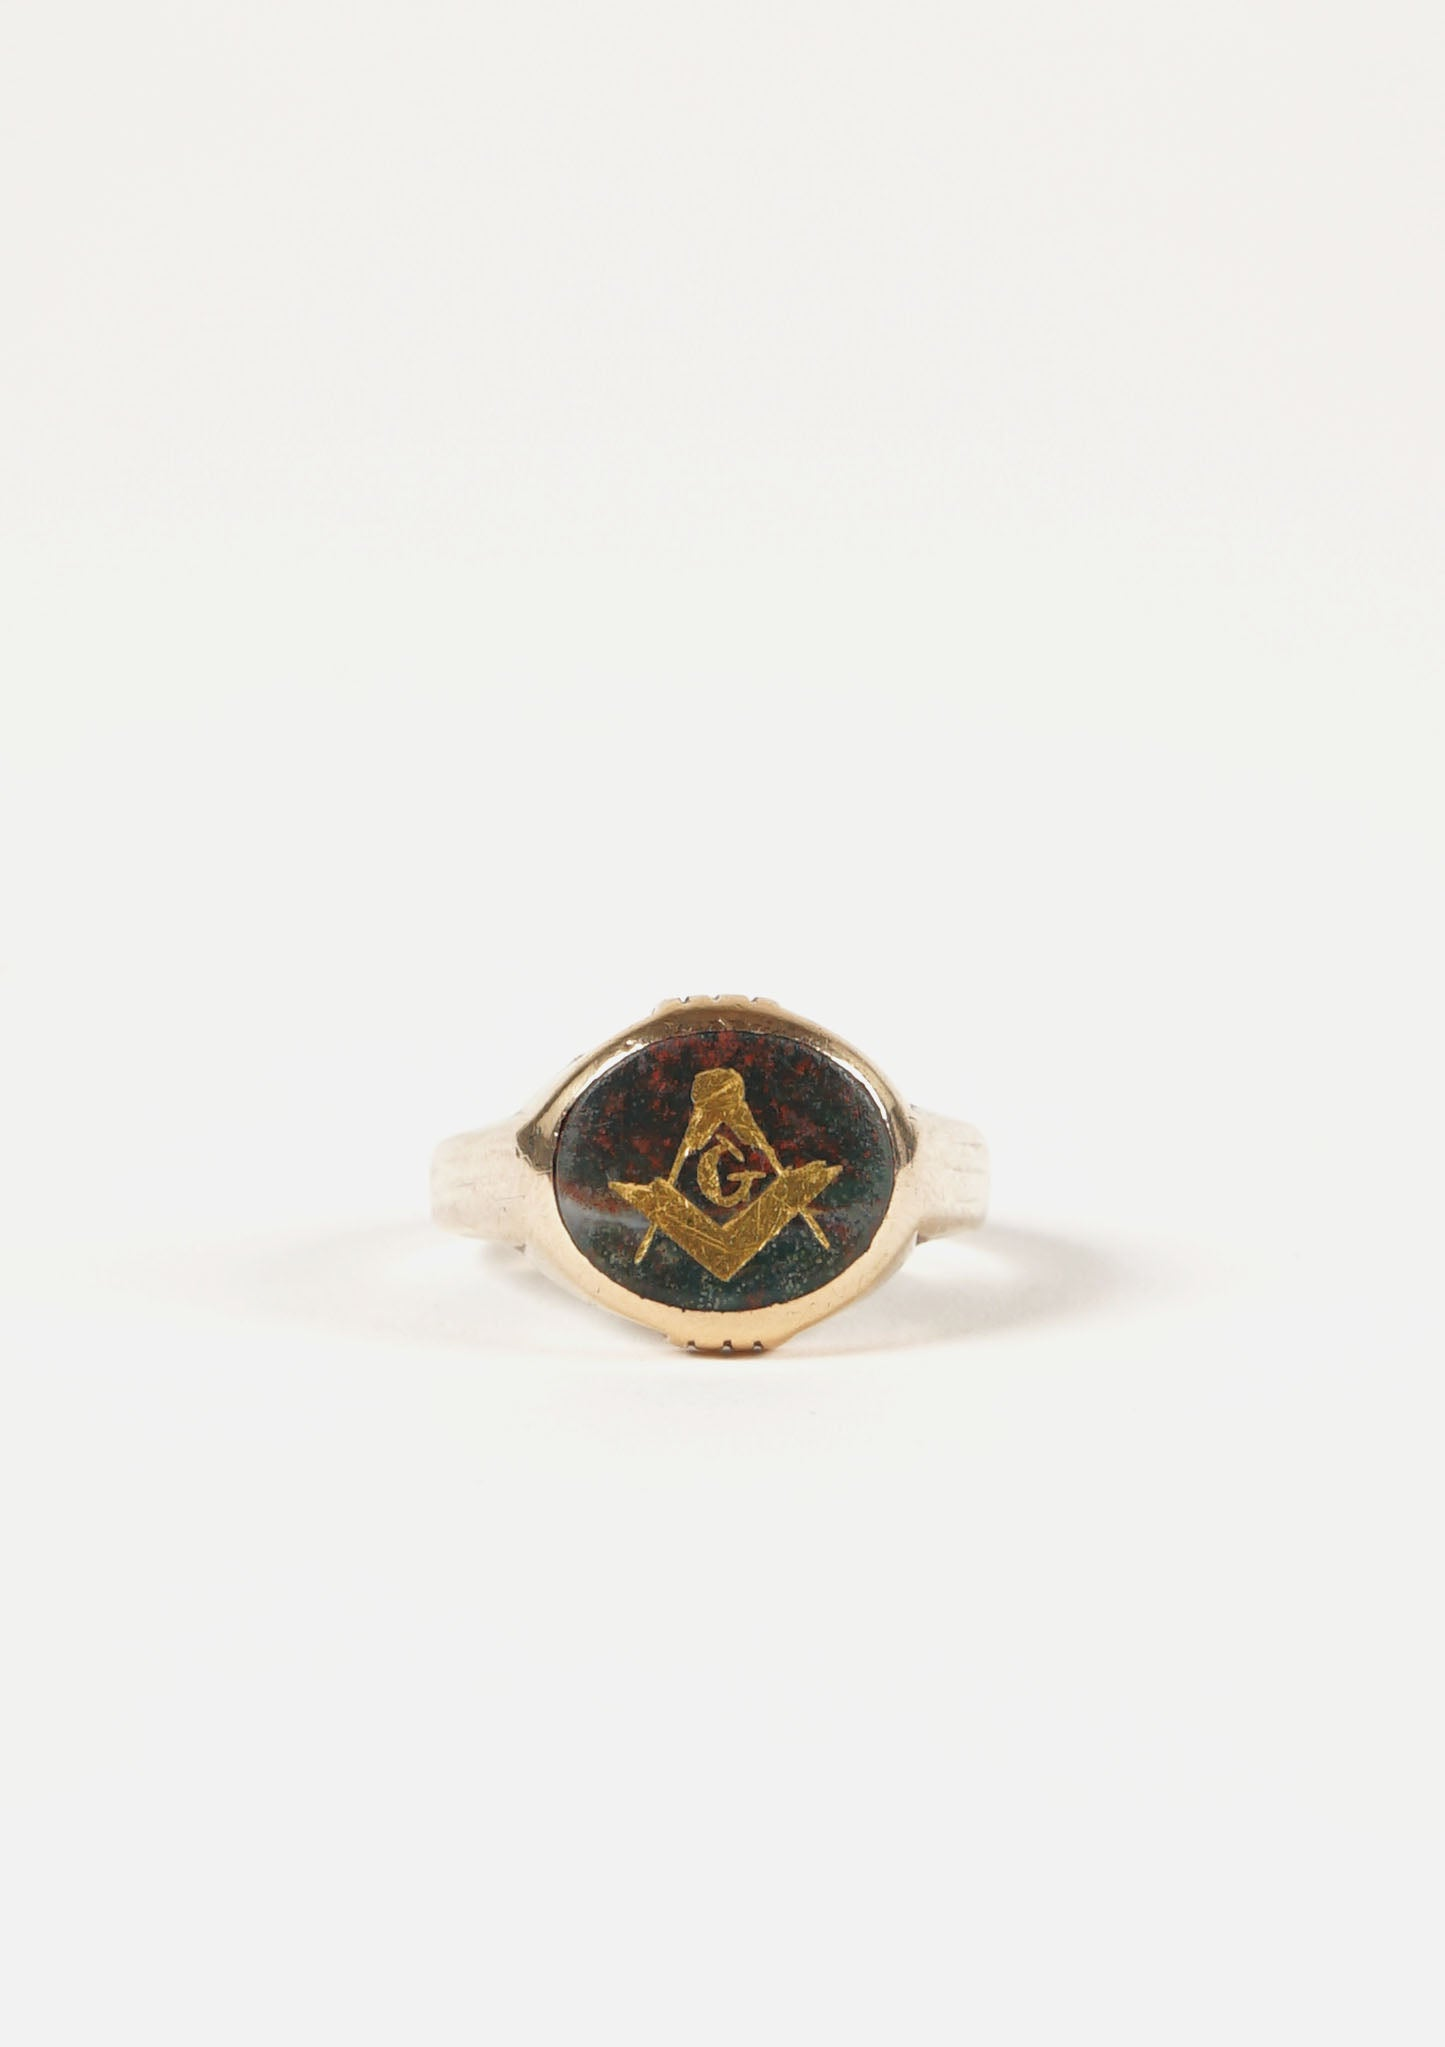 10K Masonic Gold Ring